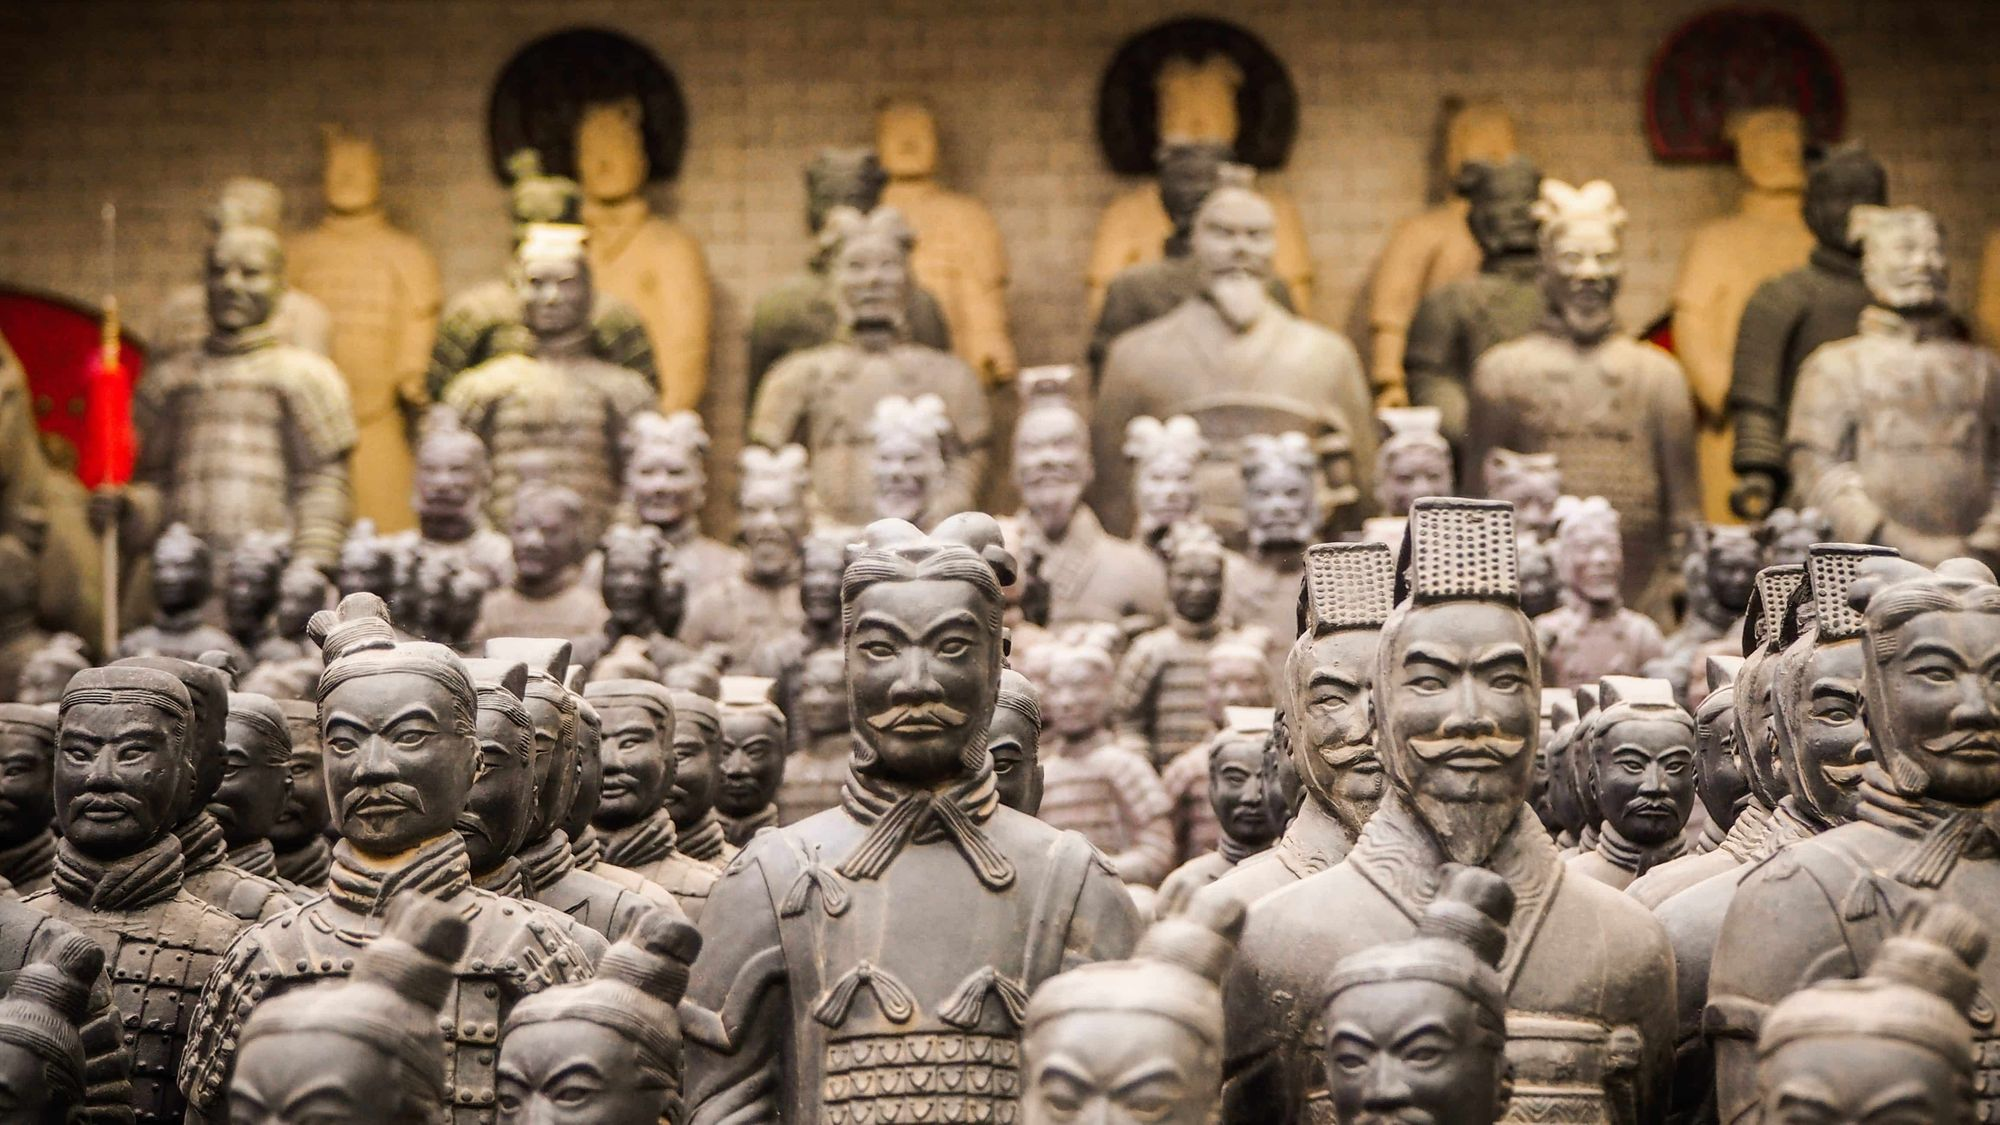 The statues of Terracotta Army.